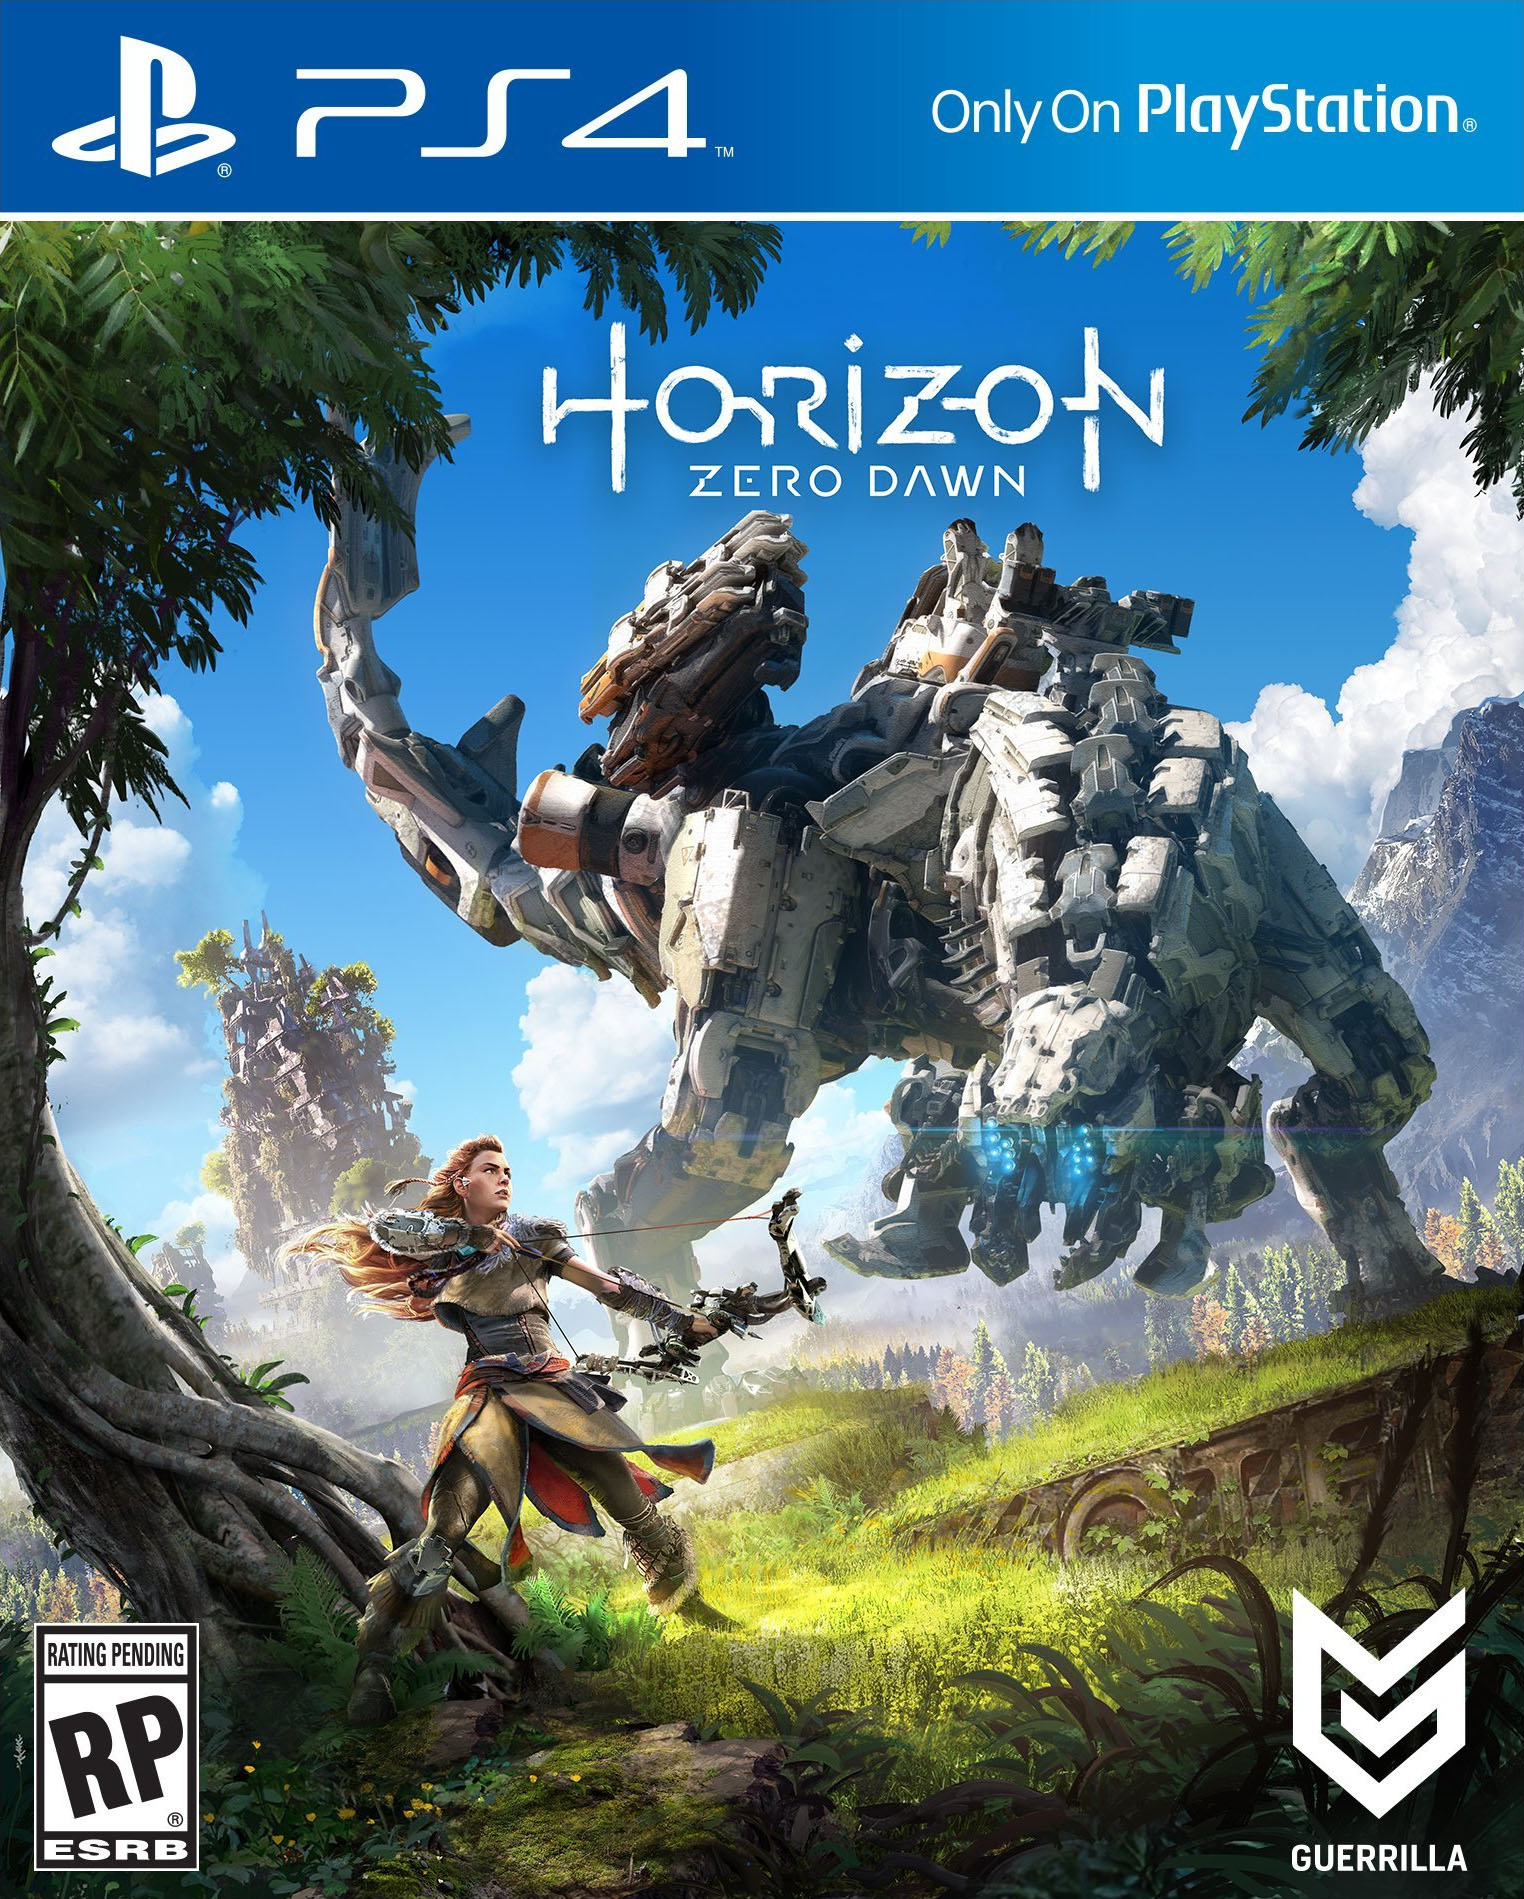 jeu horizon zero dawn sur ps4 19 95 rue du commerce. Black Bedroom Furniture Sets. Home Design Ideas